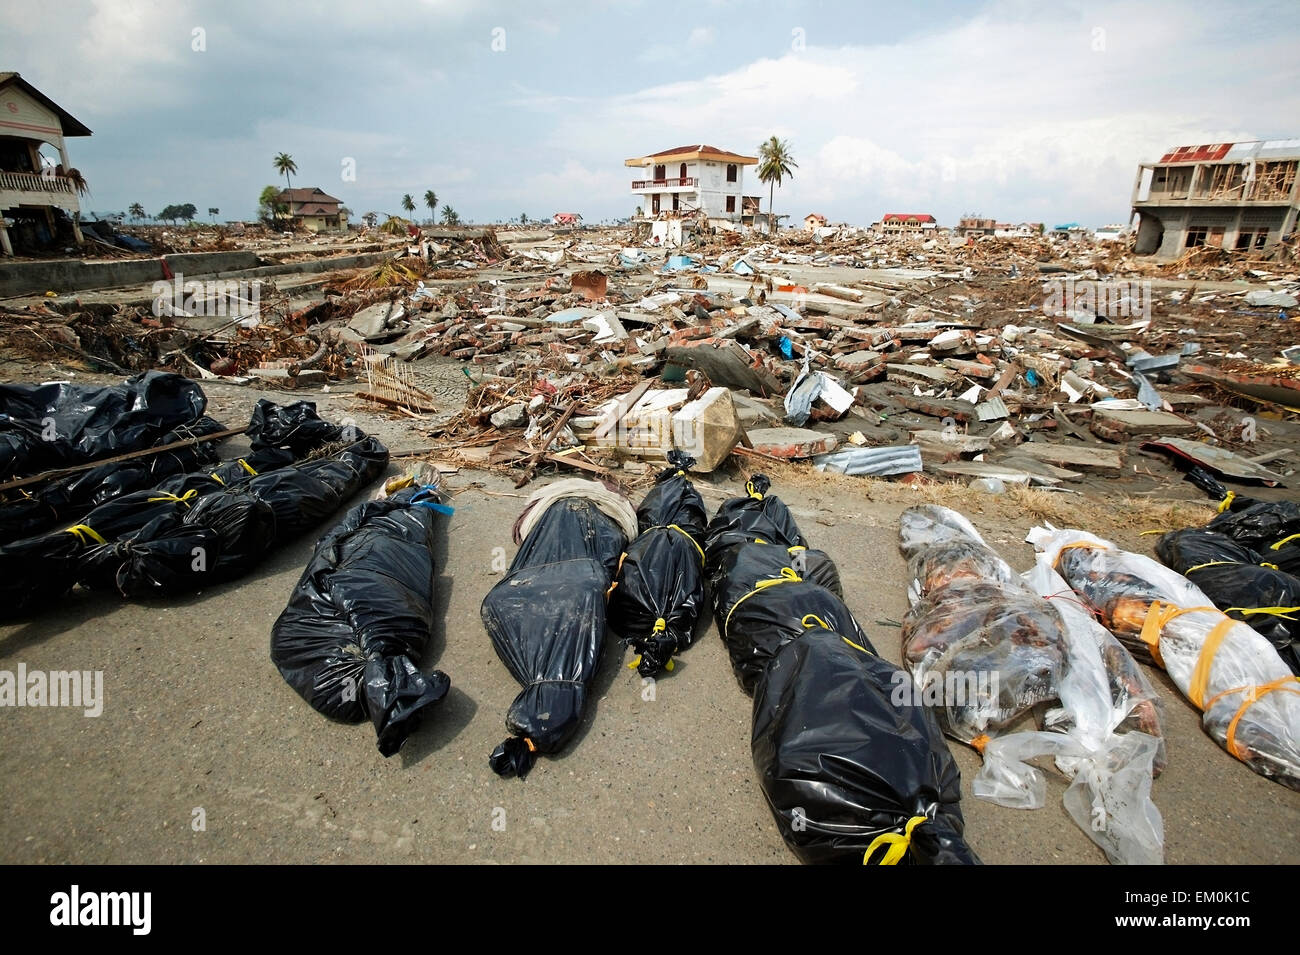 2004 indian ocean earthquake and japanese Indian ocean tsunami of 2004:  was struck by a large tsunami that had been generated by an earthquake centred in the indian ocean near indonesia.